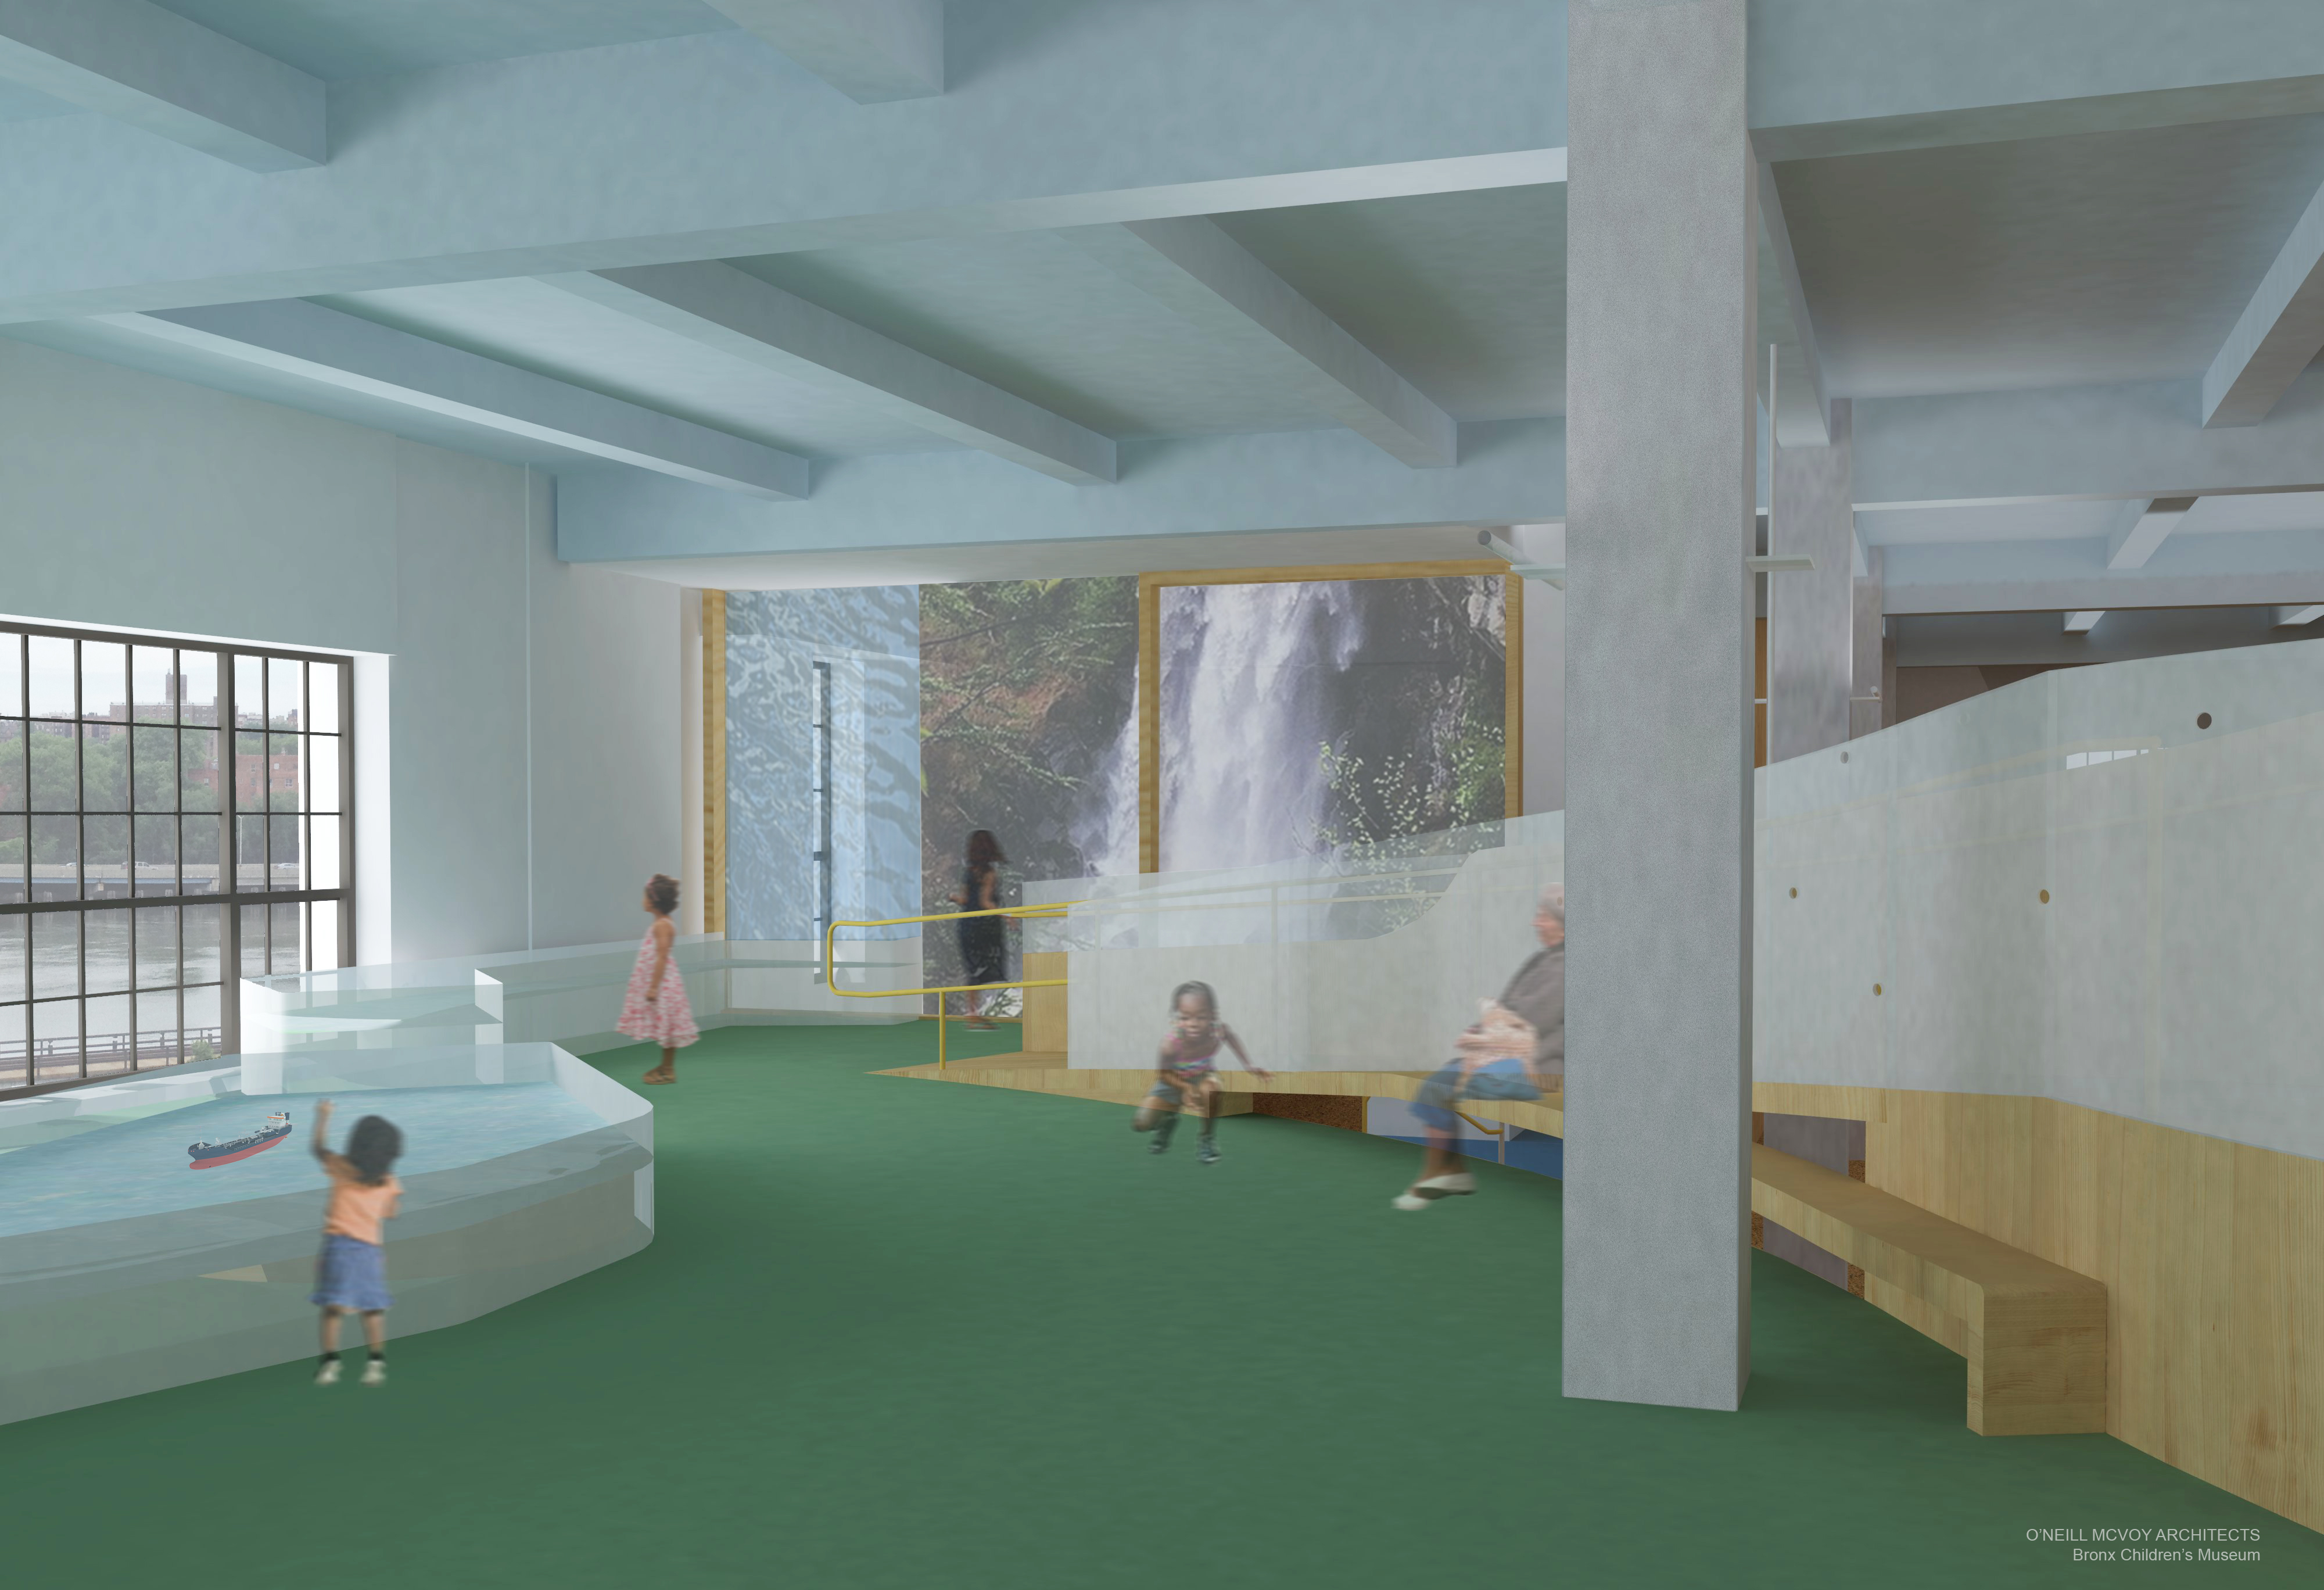 Rendering of the Bronx Children's Museum 2018